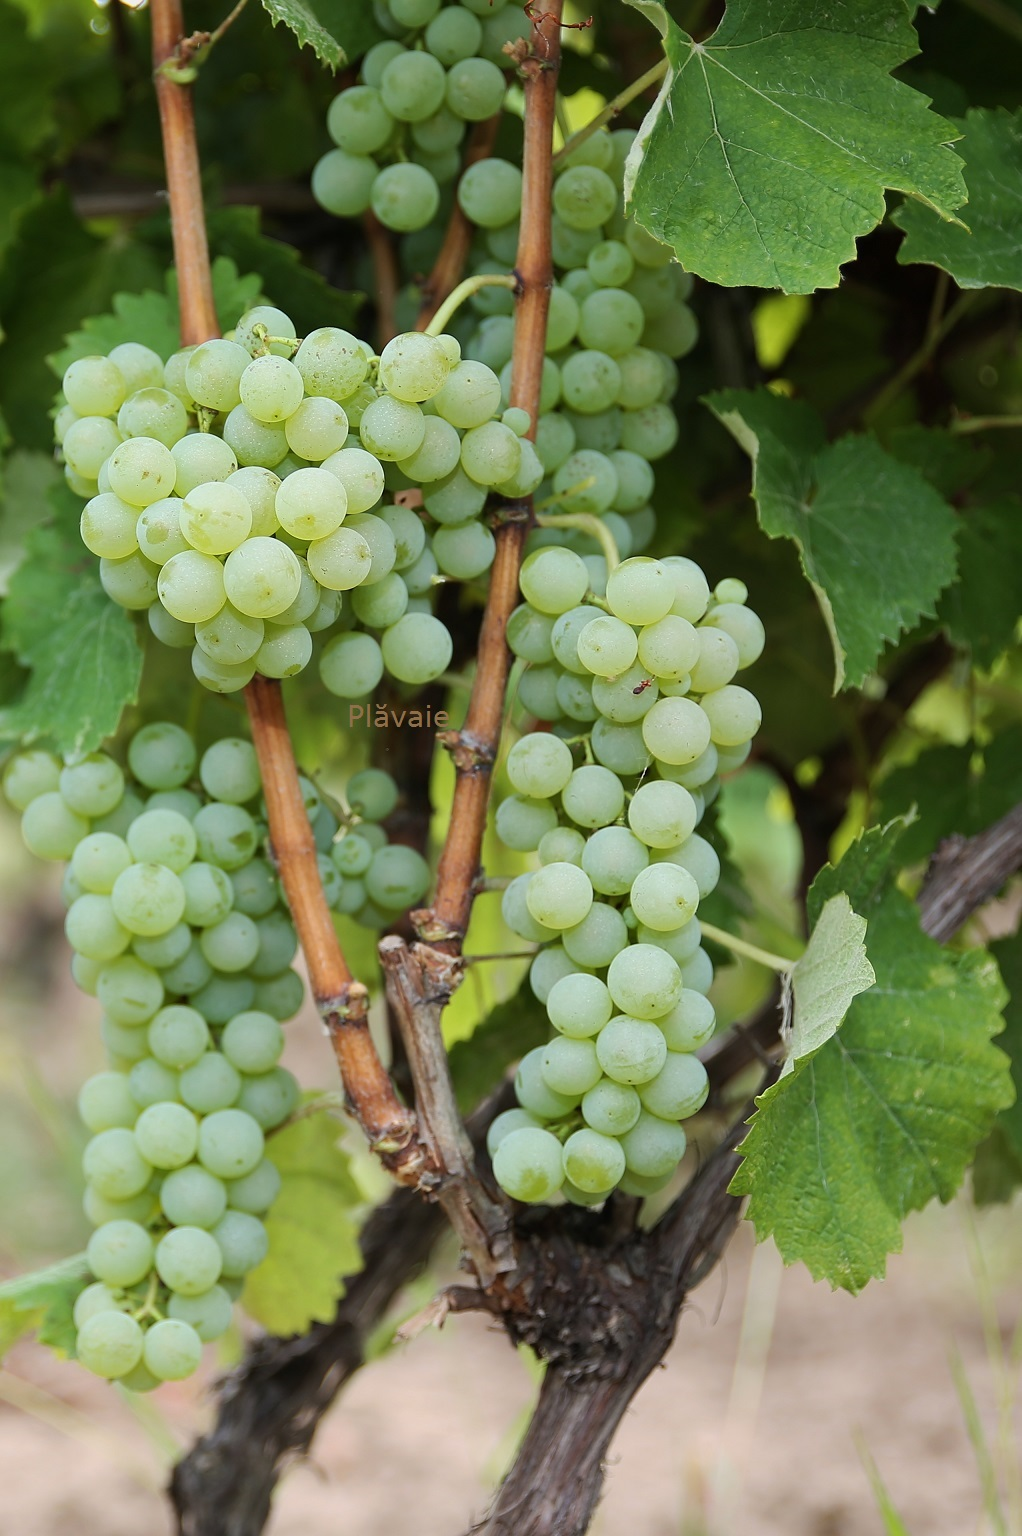 Plavaie Grape